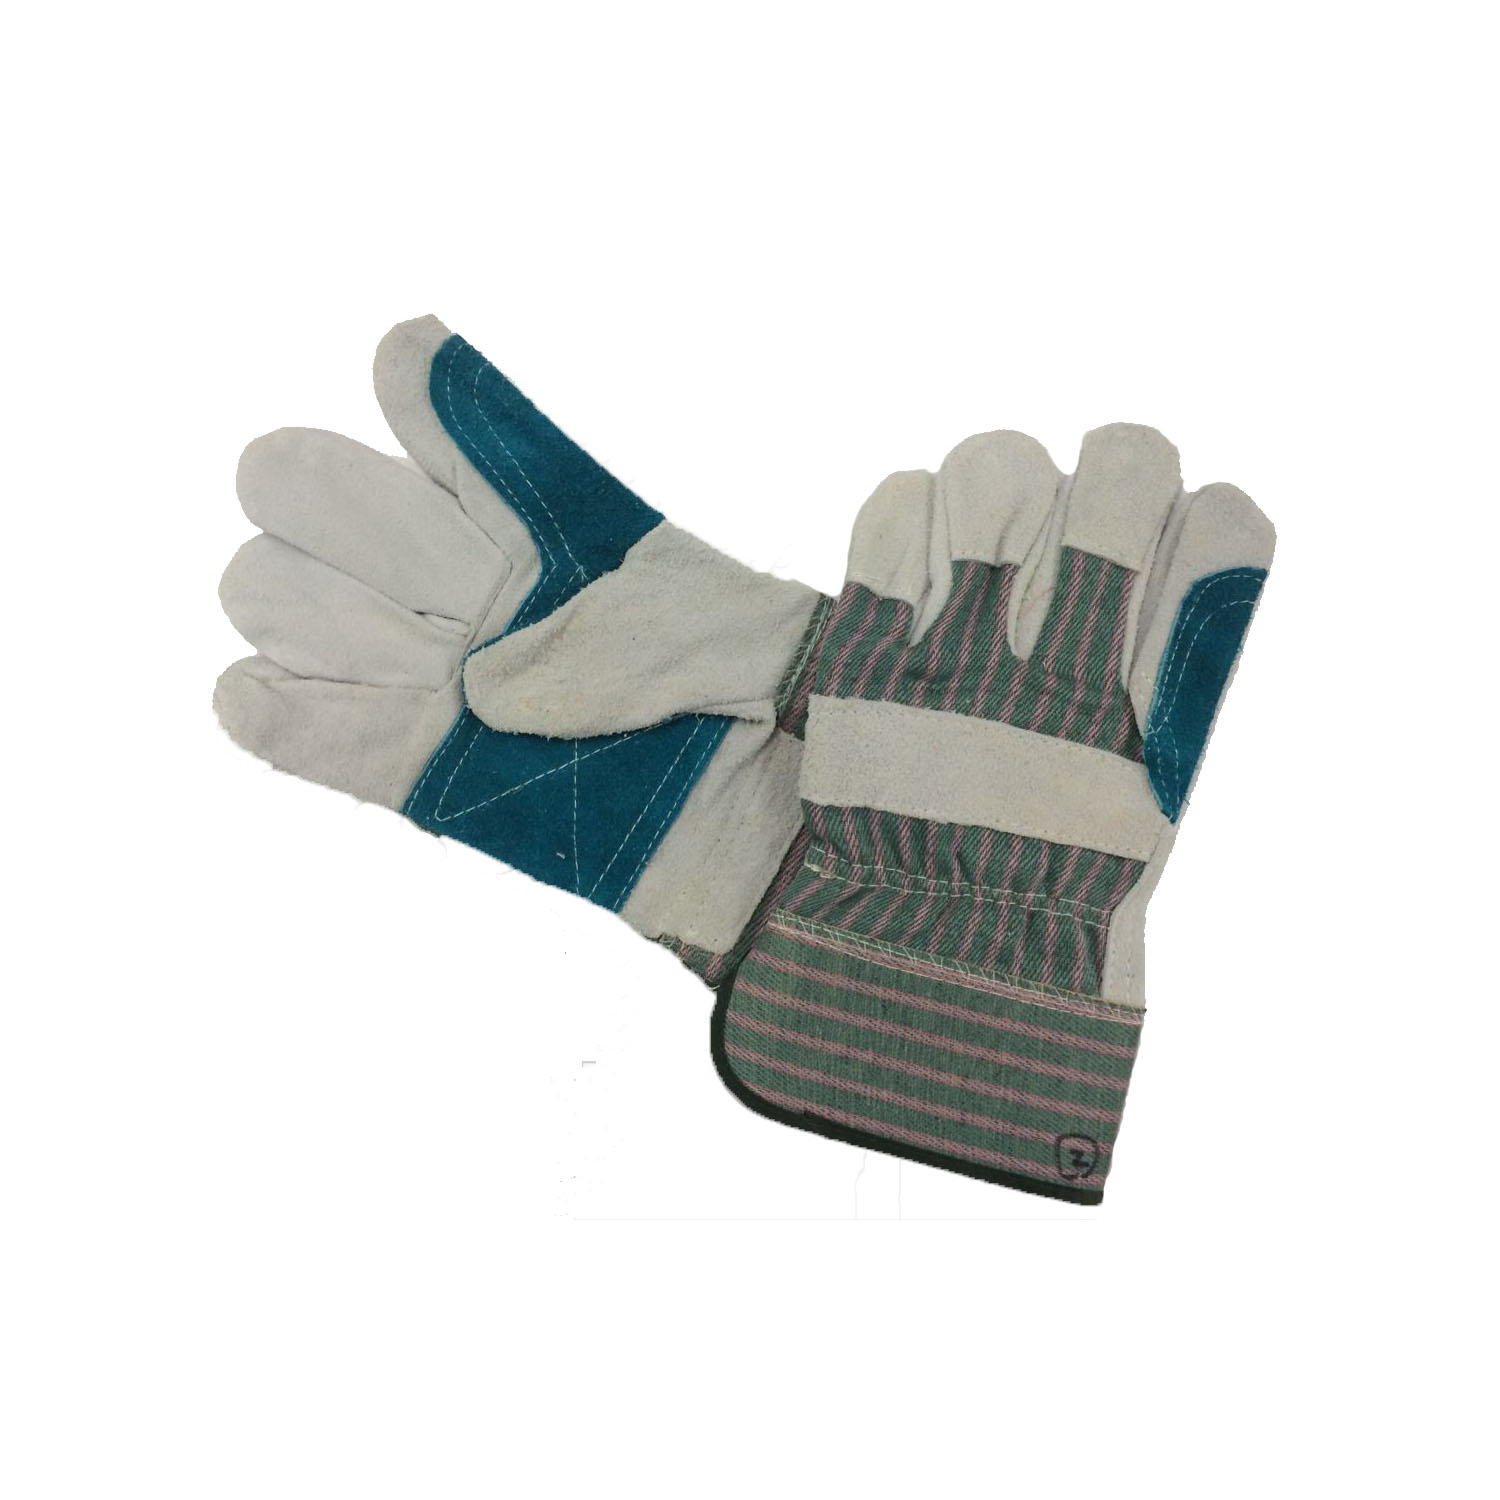 Working Glove 4 - Cow split leather, reinforced palm, rubberized cuff, green/grey drill fabric, half lining, AB grade.